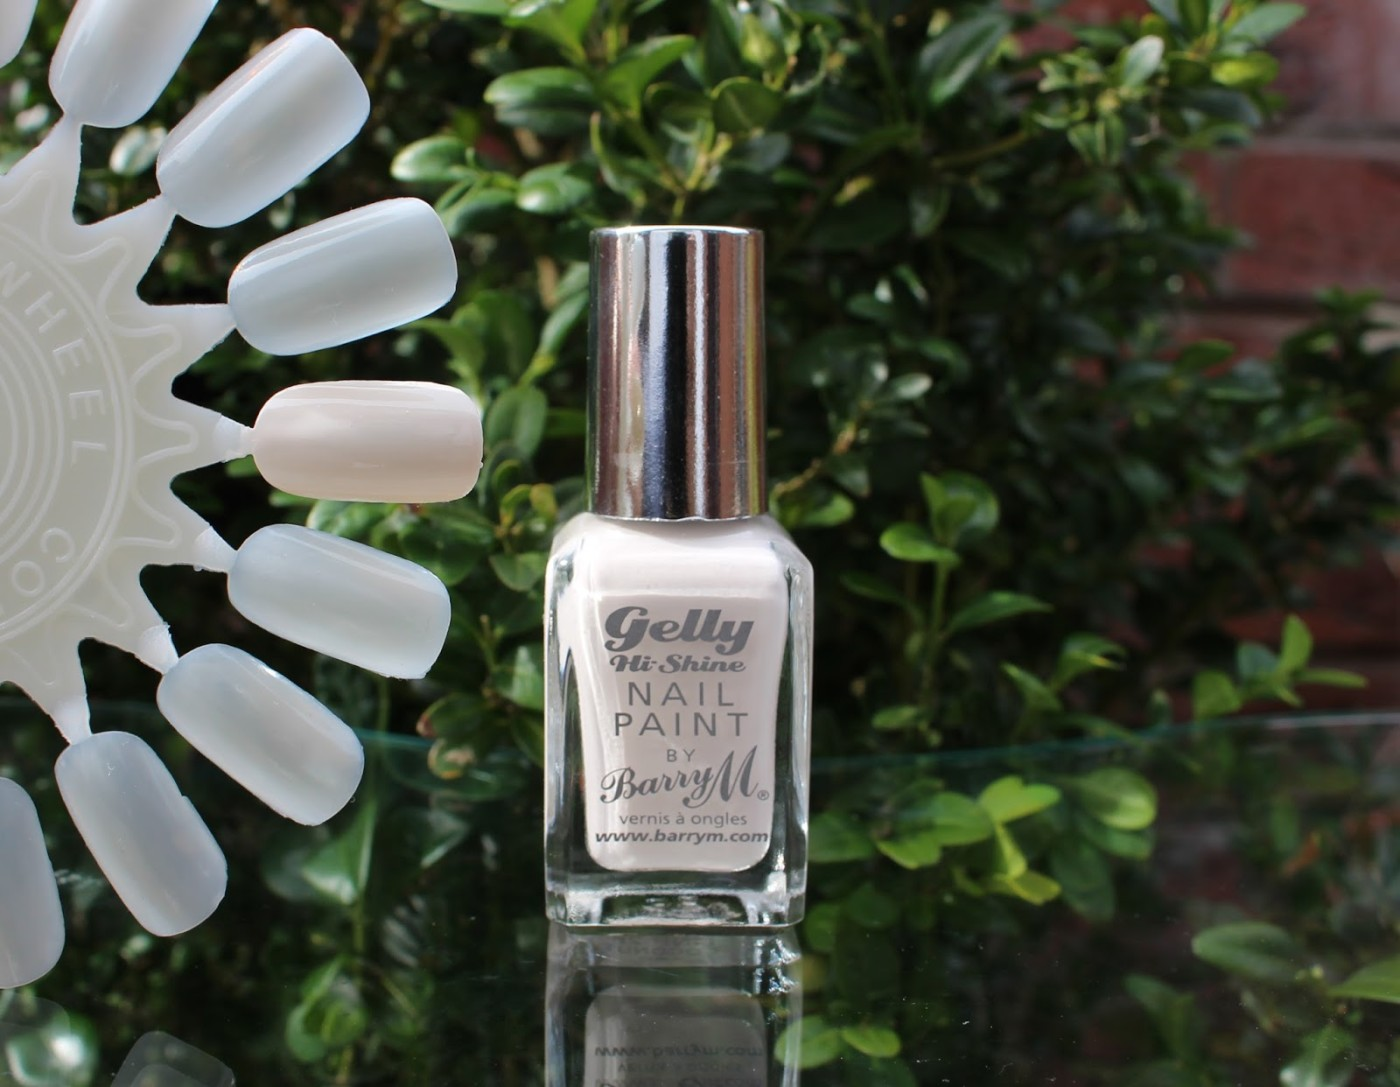 barry m gel nail polish, barry m, barry m coconut, barry m hi shine gel nail polish, off white nail polish, nail polish, nail varnish, through chelsea's eyes, swatched